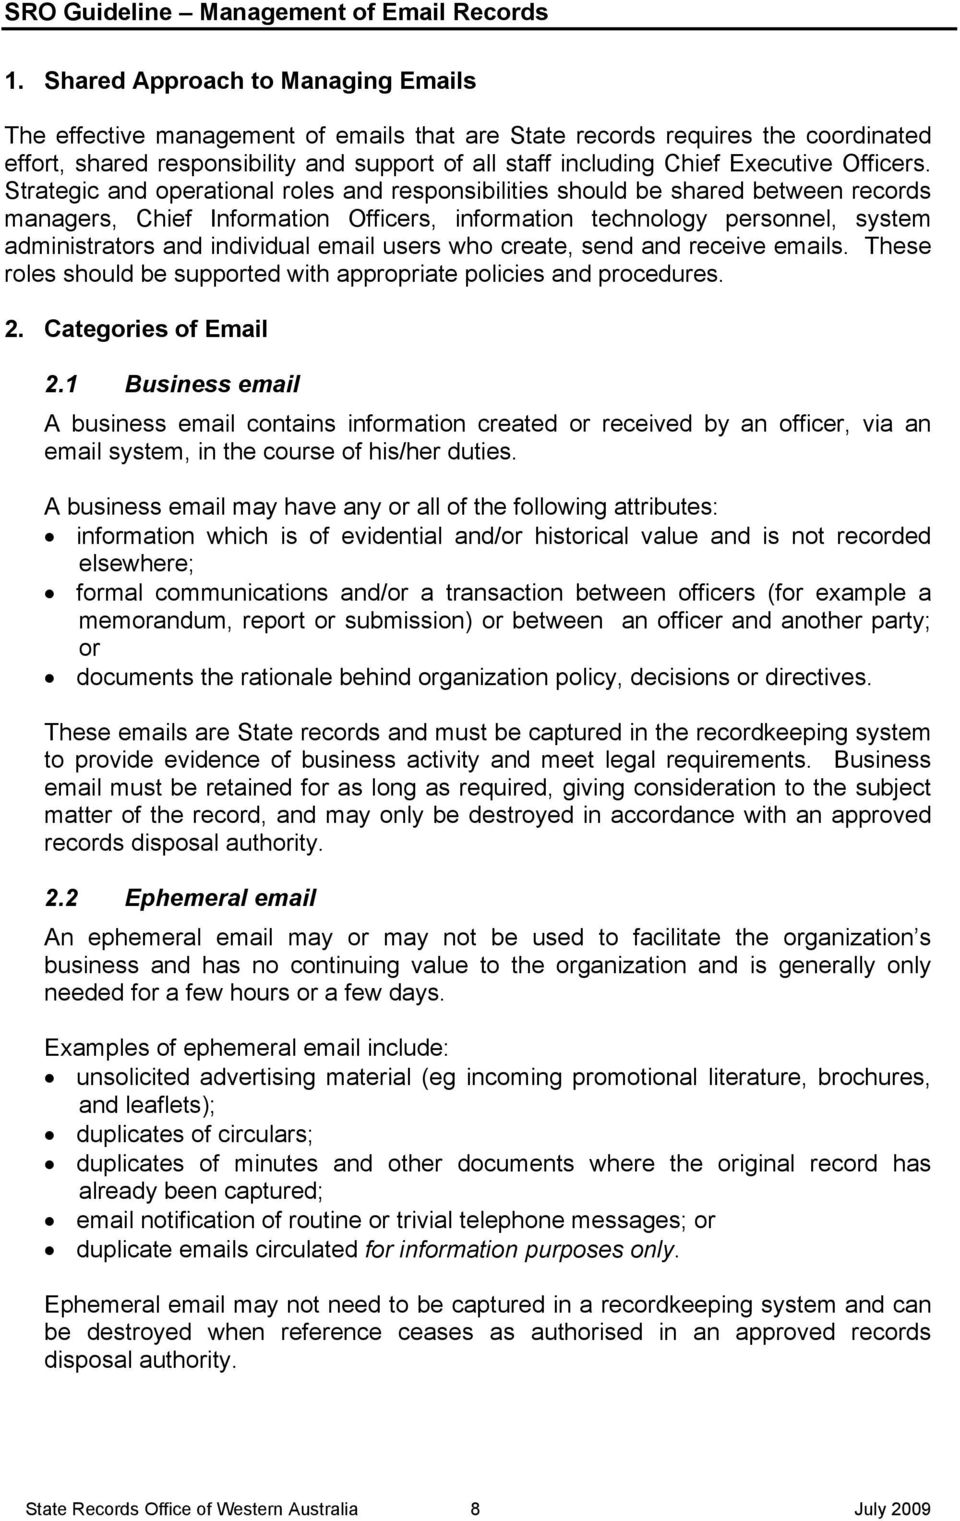 Management of Records - PDF